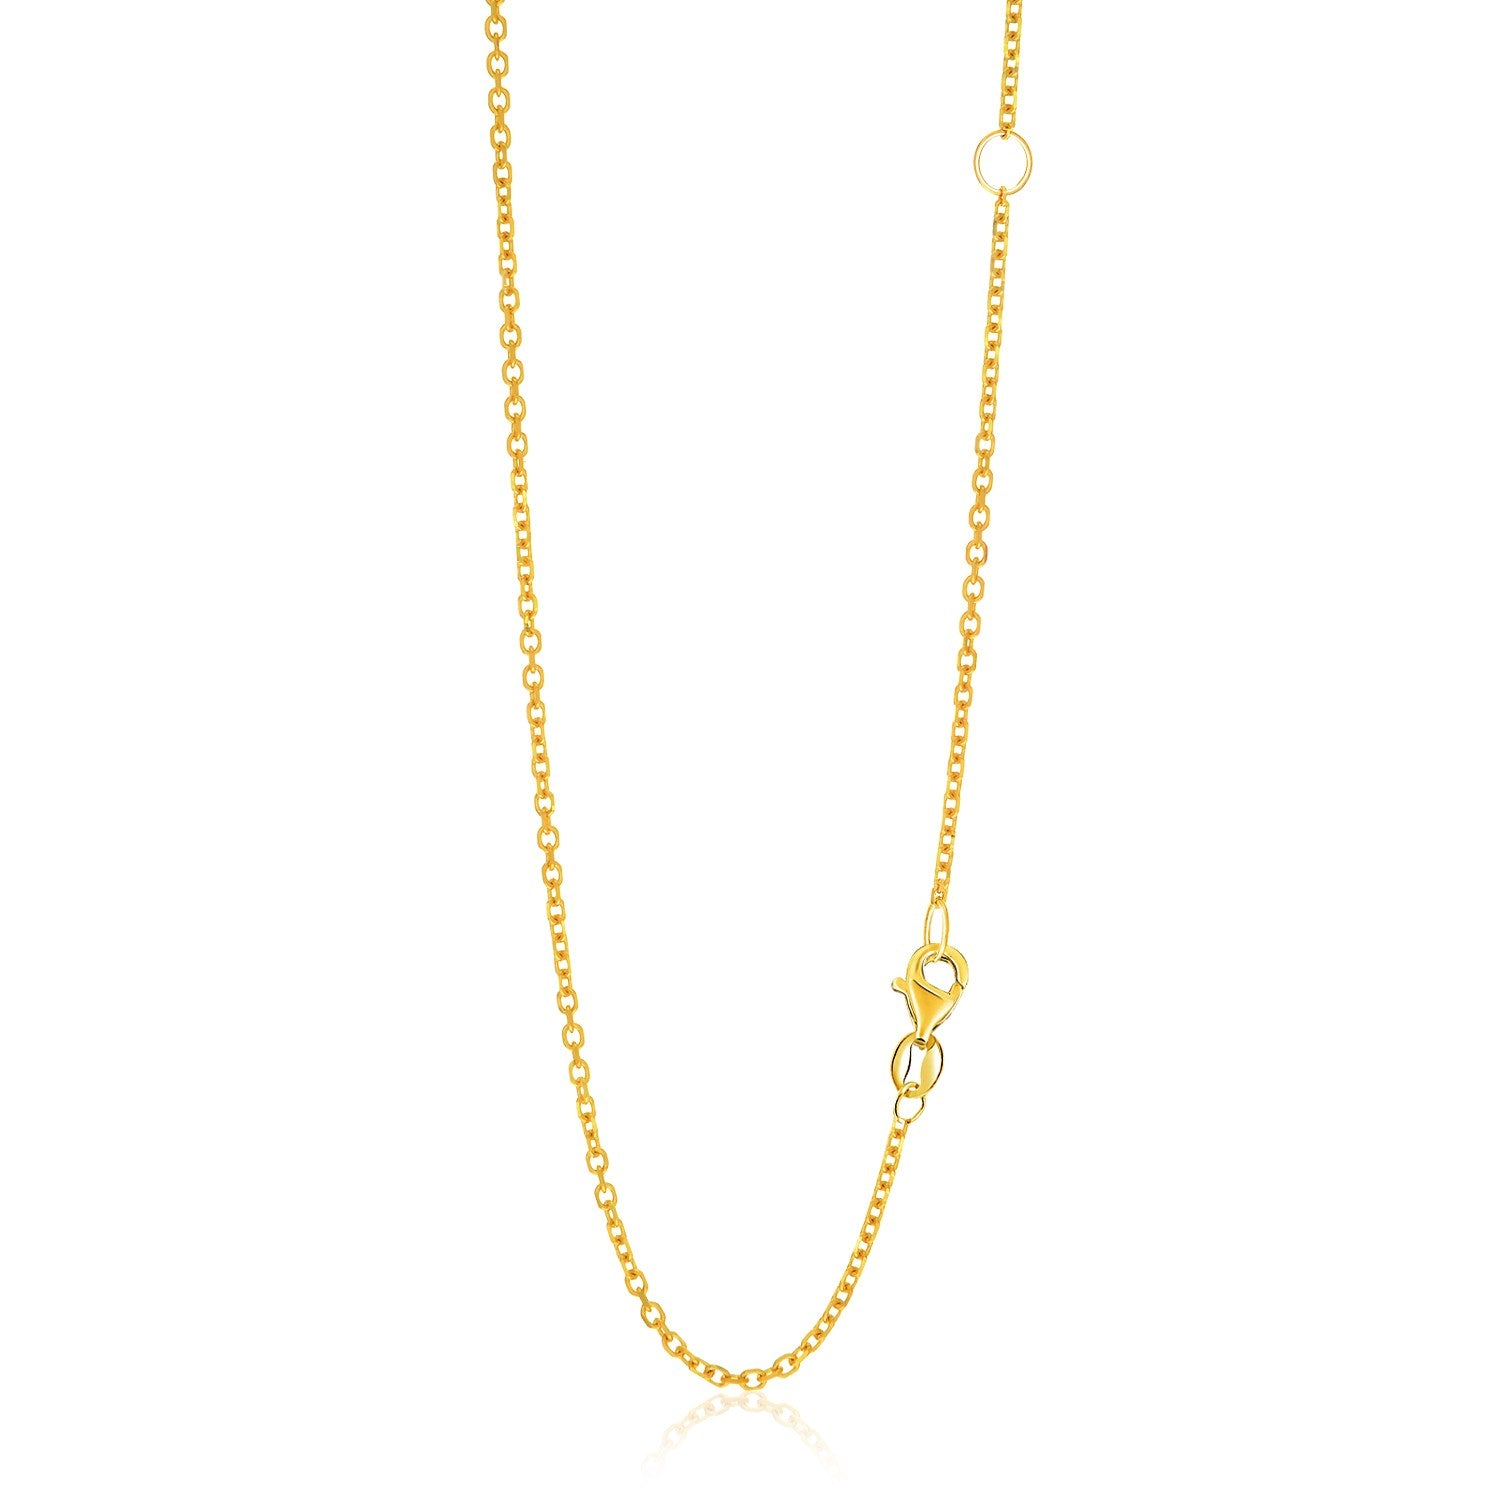 14k Yellow Gold Adjustable Cable Chain 1.5mm